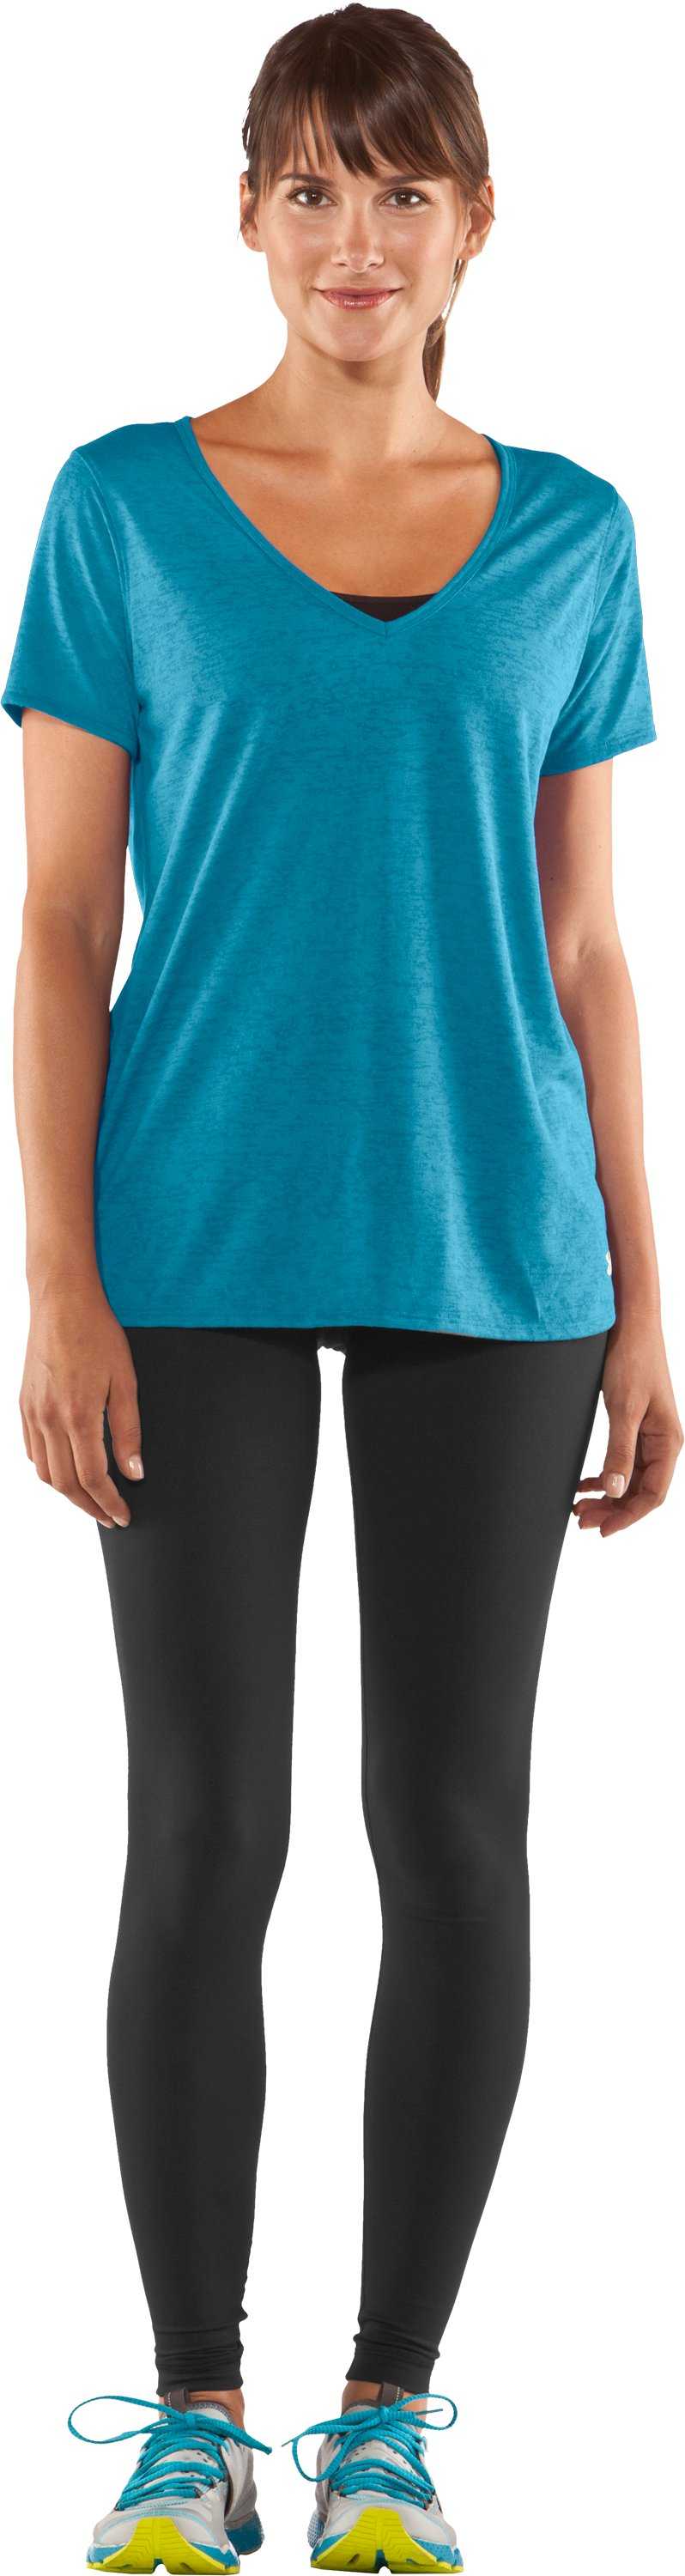 Women's Achieve Burnout T-Shirt, Break